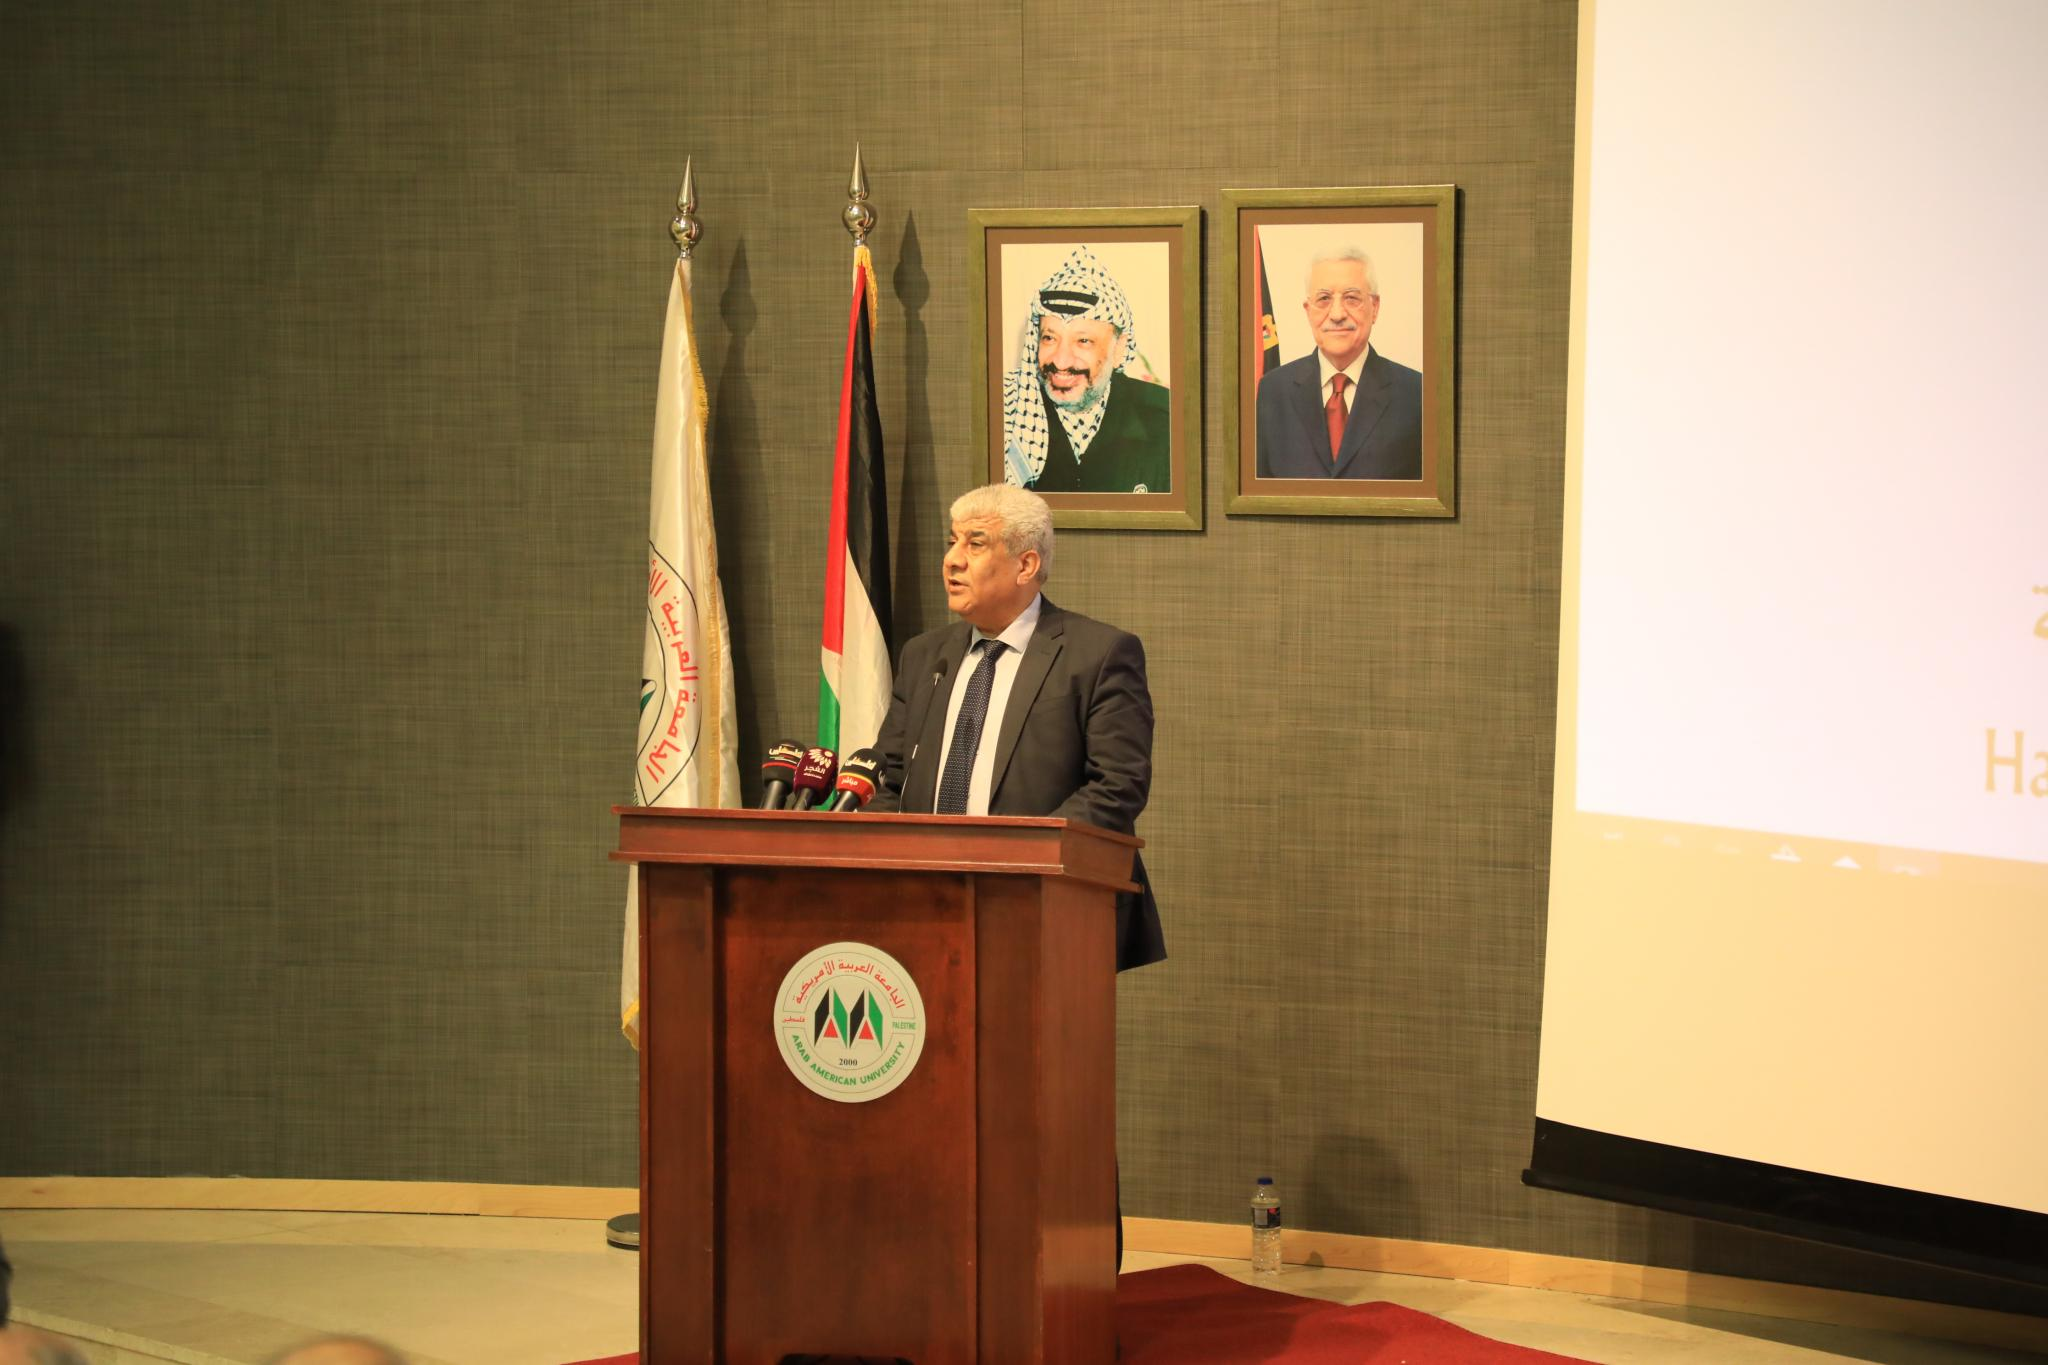 AAUP Hosts the Ceremony of Honoring the Winners of Hassib Al Sabbagh and Sa'id Khoury Awards for Engineering